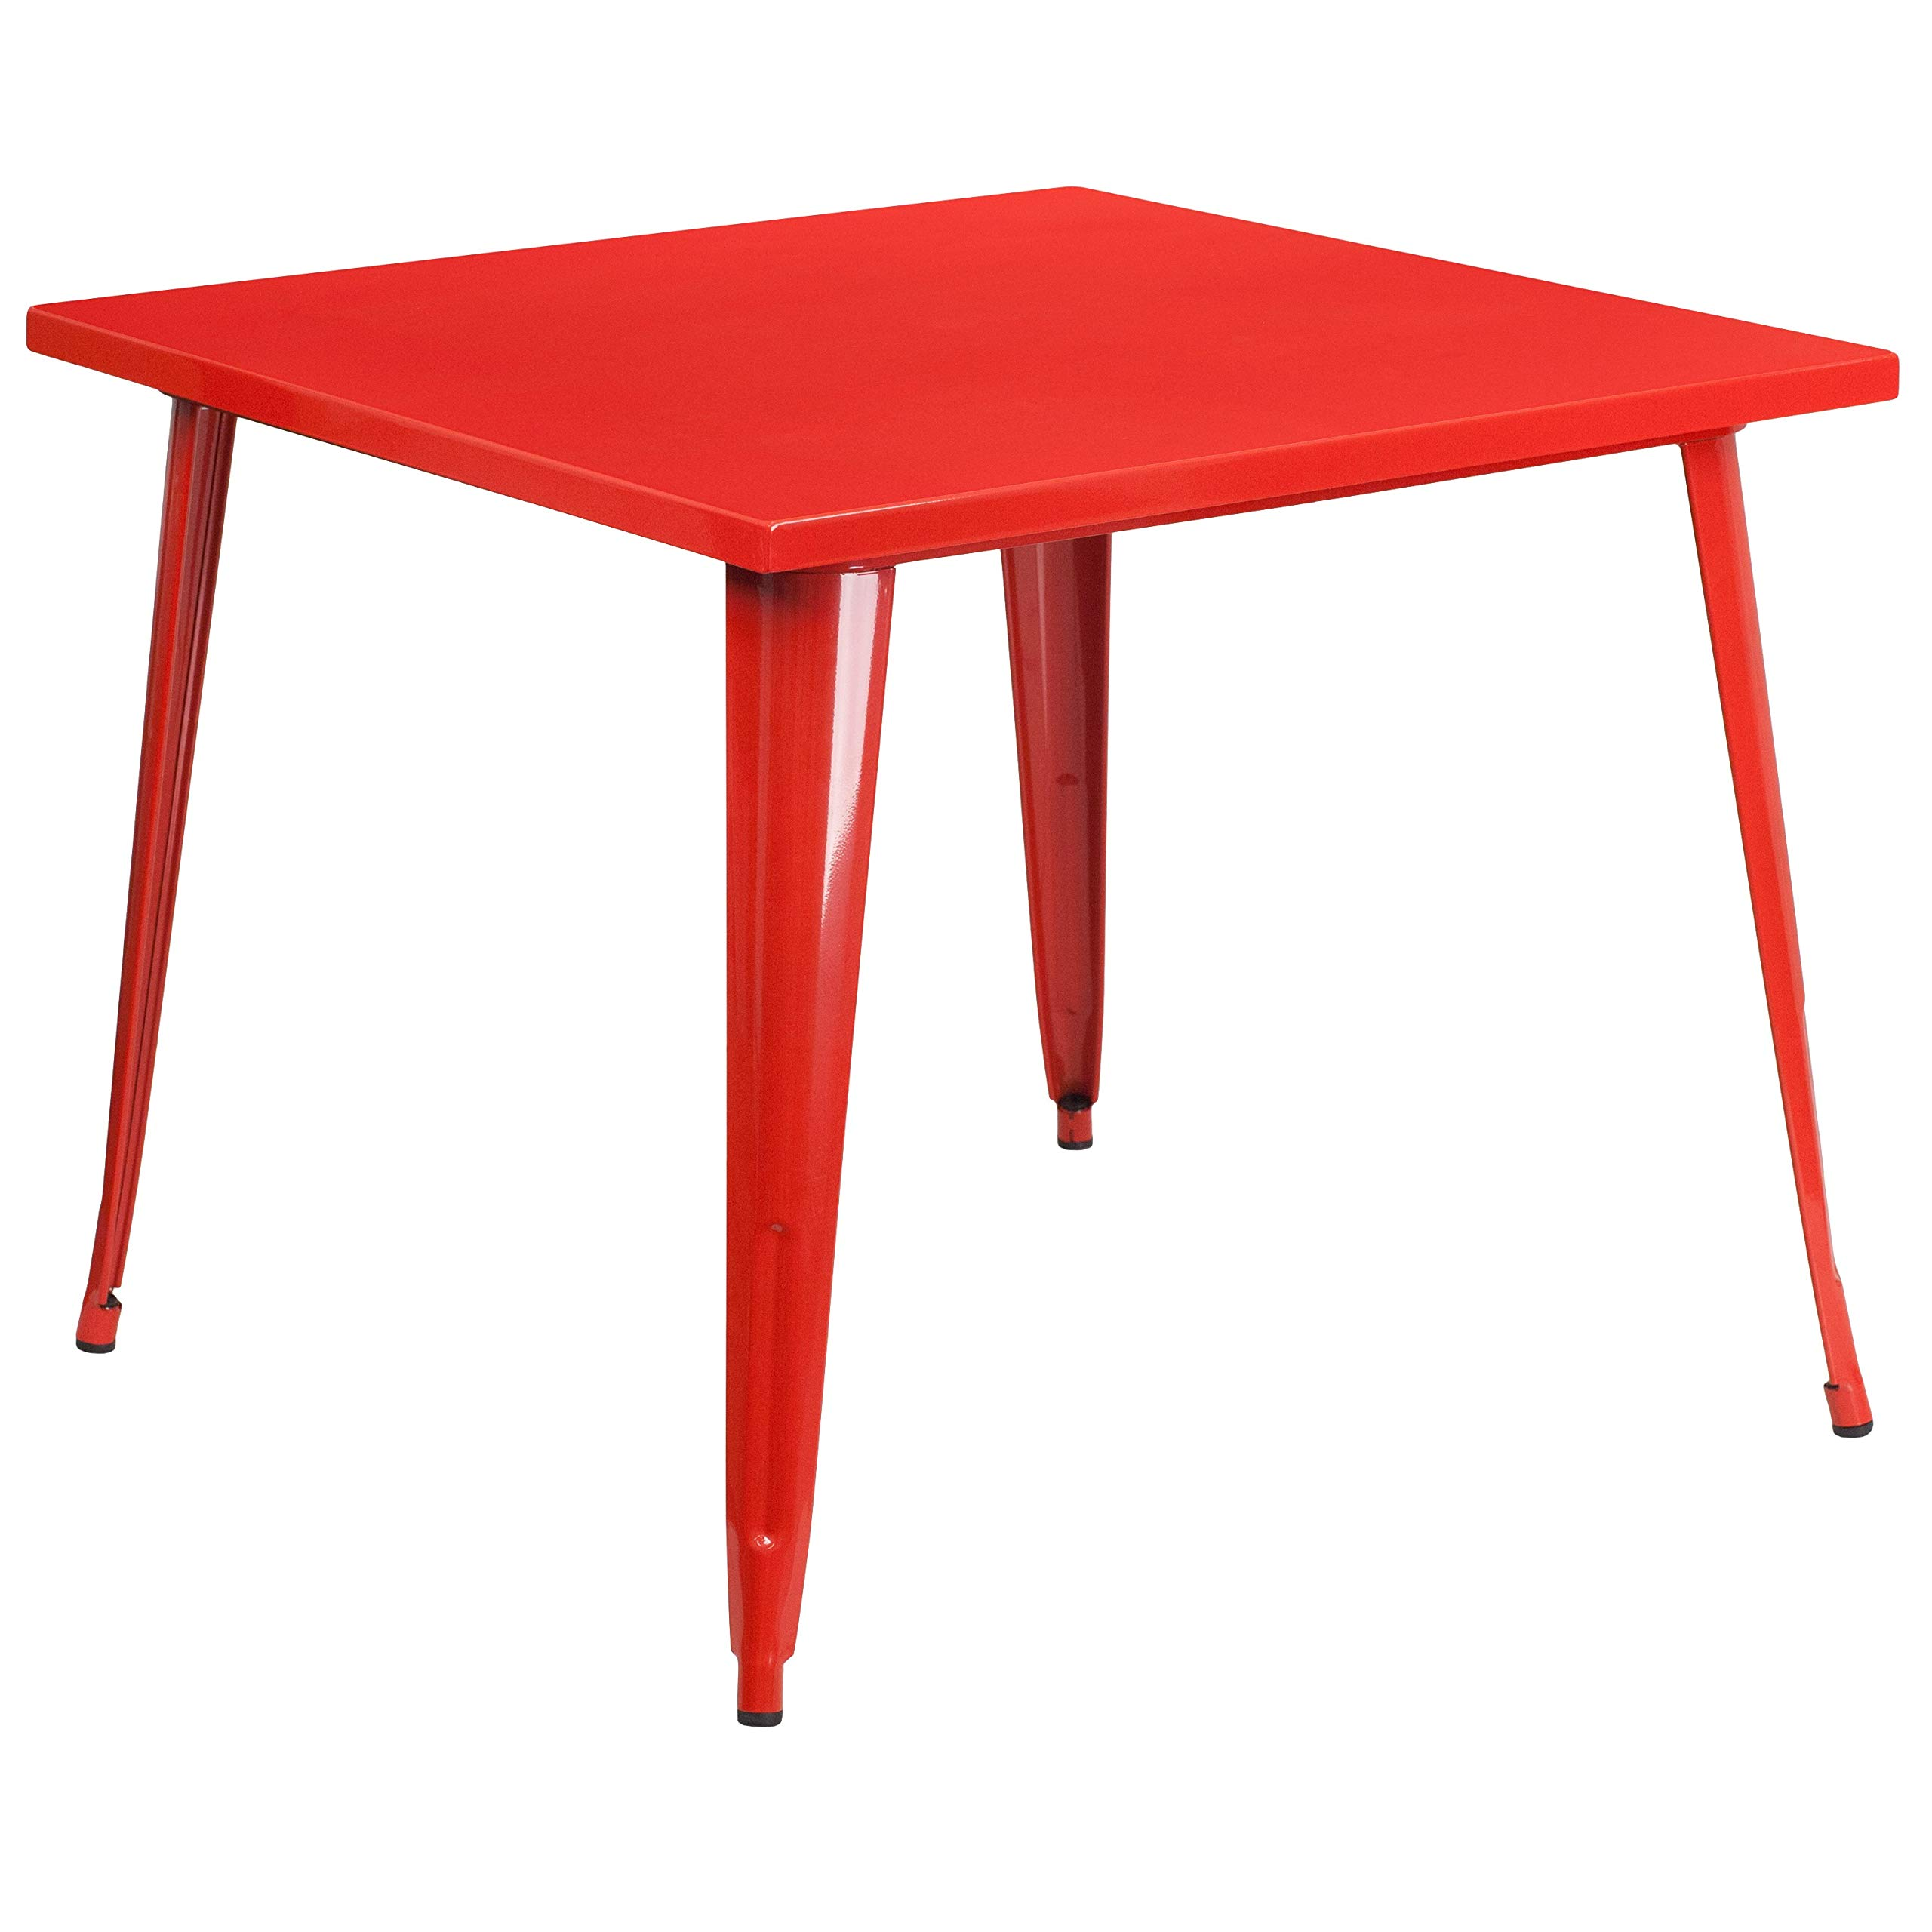 MFO 35.5'' Square Red Metal Indoor-Outdoor Table by My Friendly Office